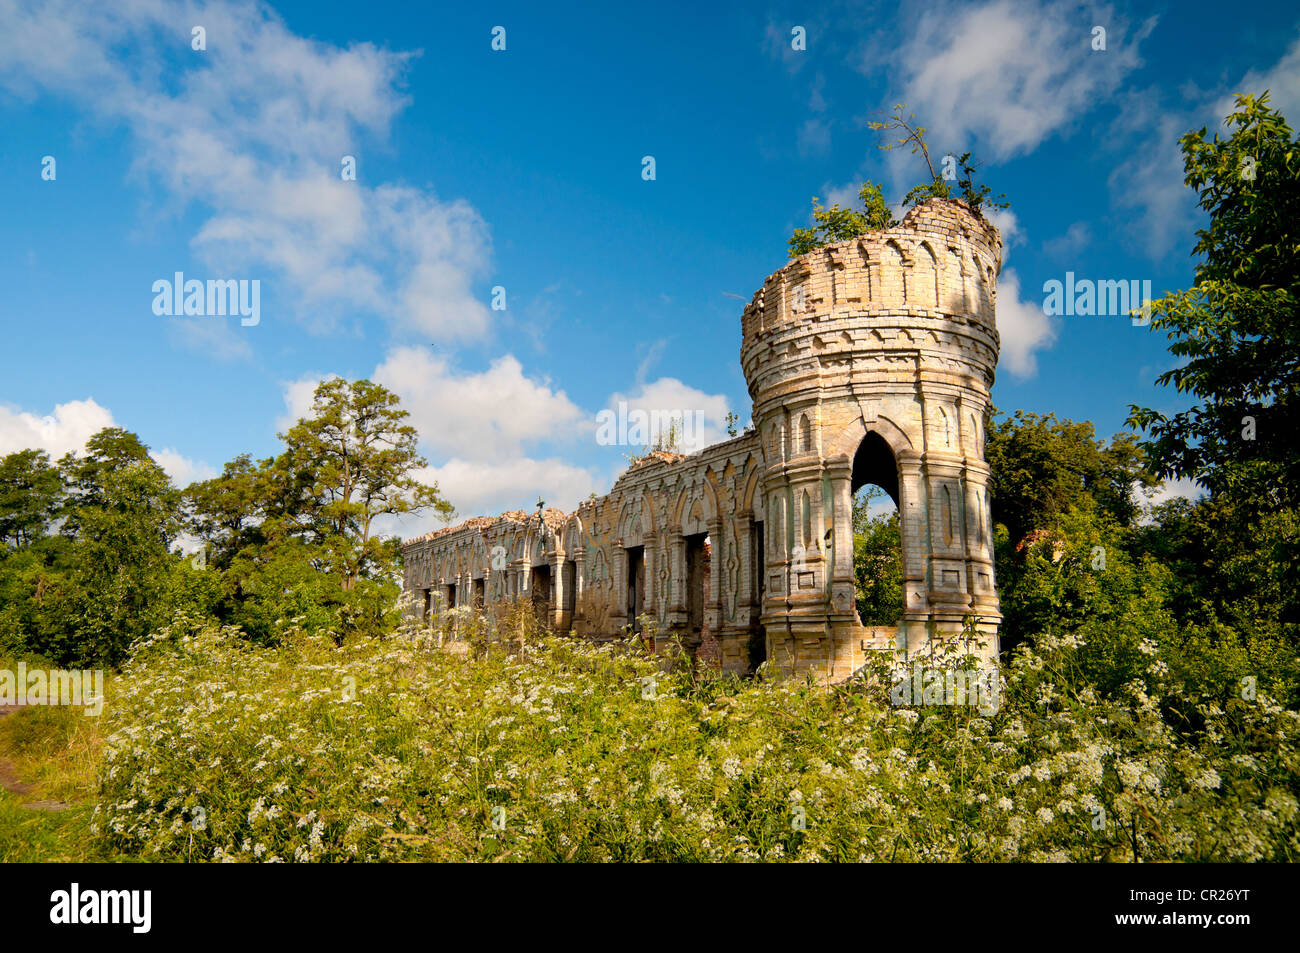 The ruins of the castle is located between Kyiv and Chernobyl, Ukraine Stock Photo